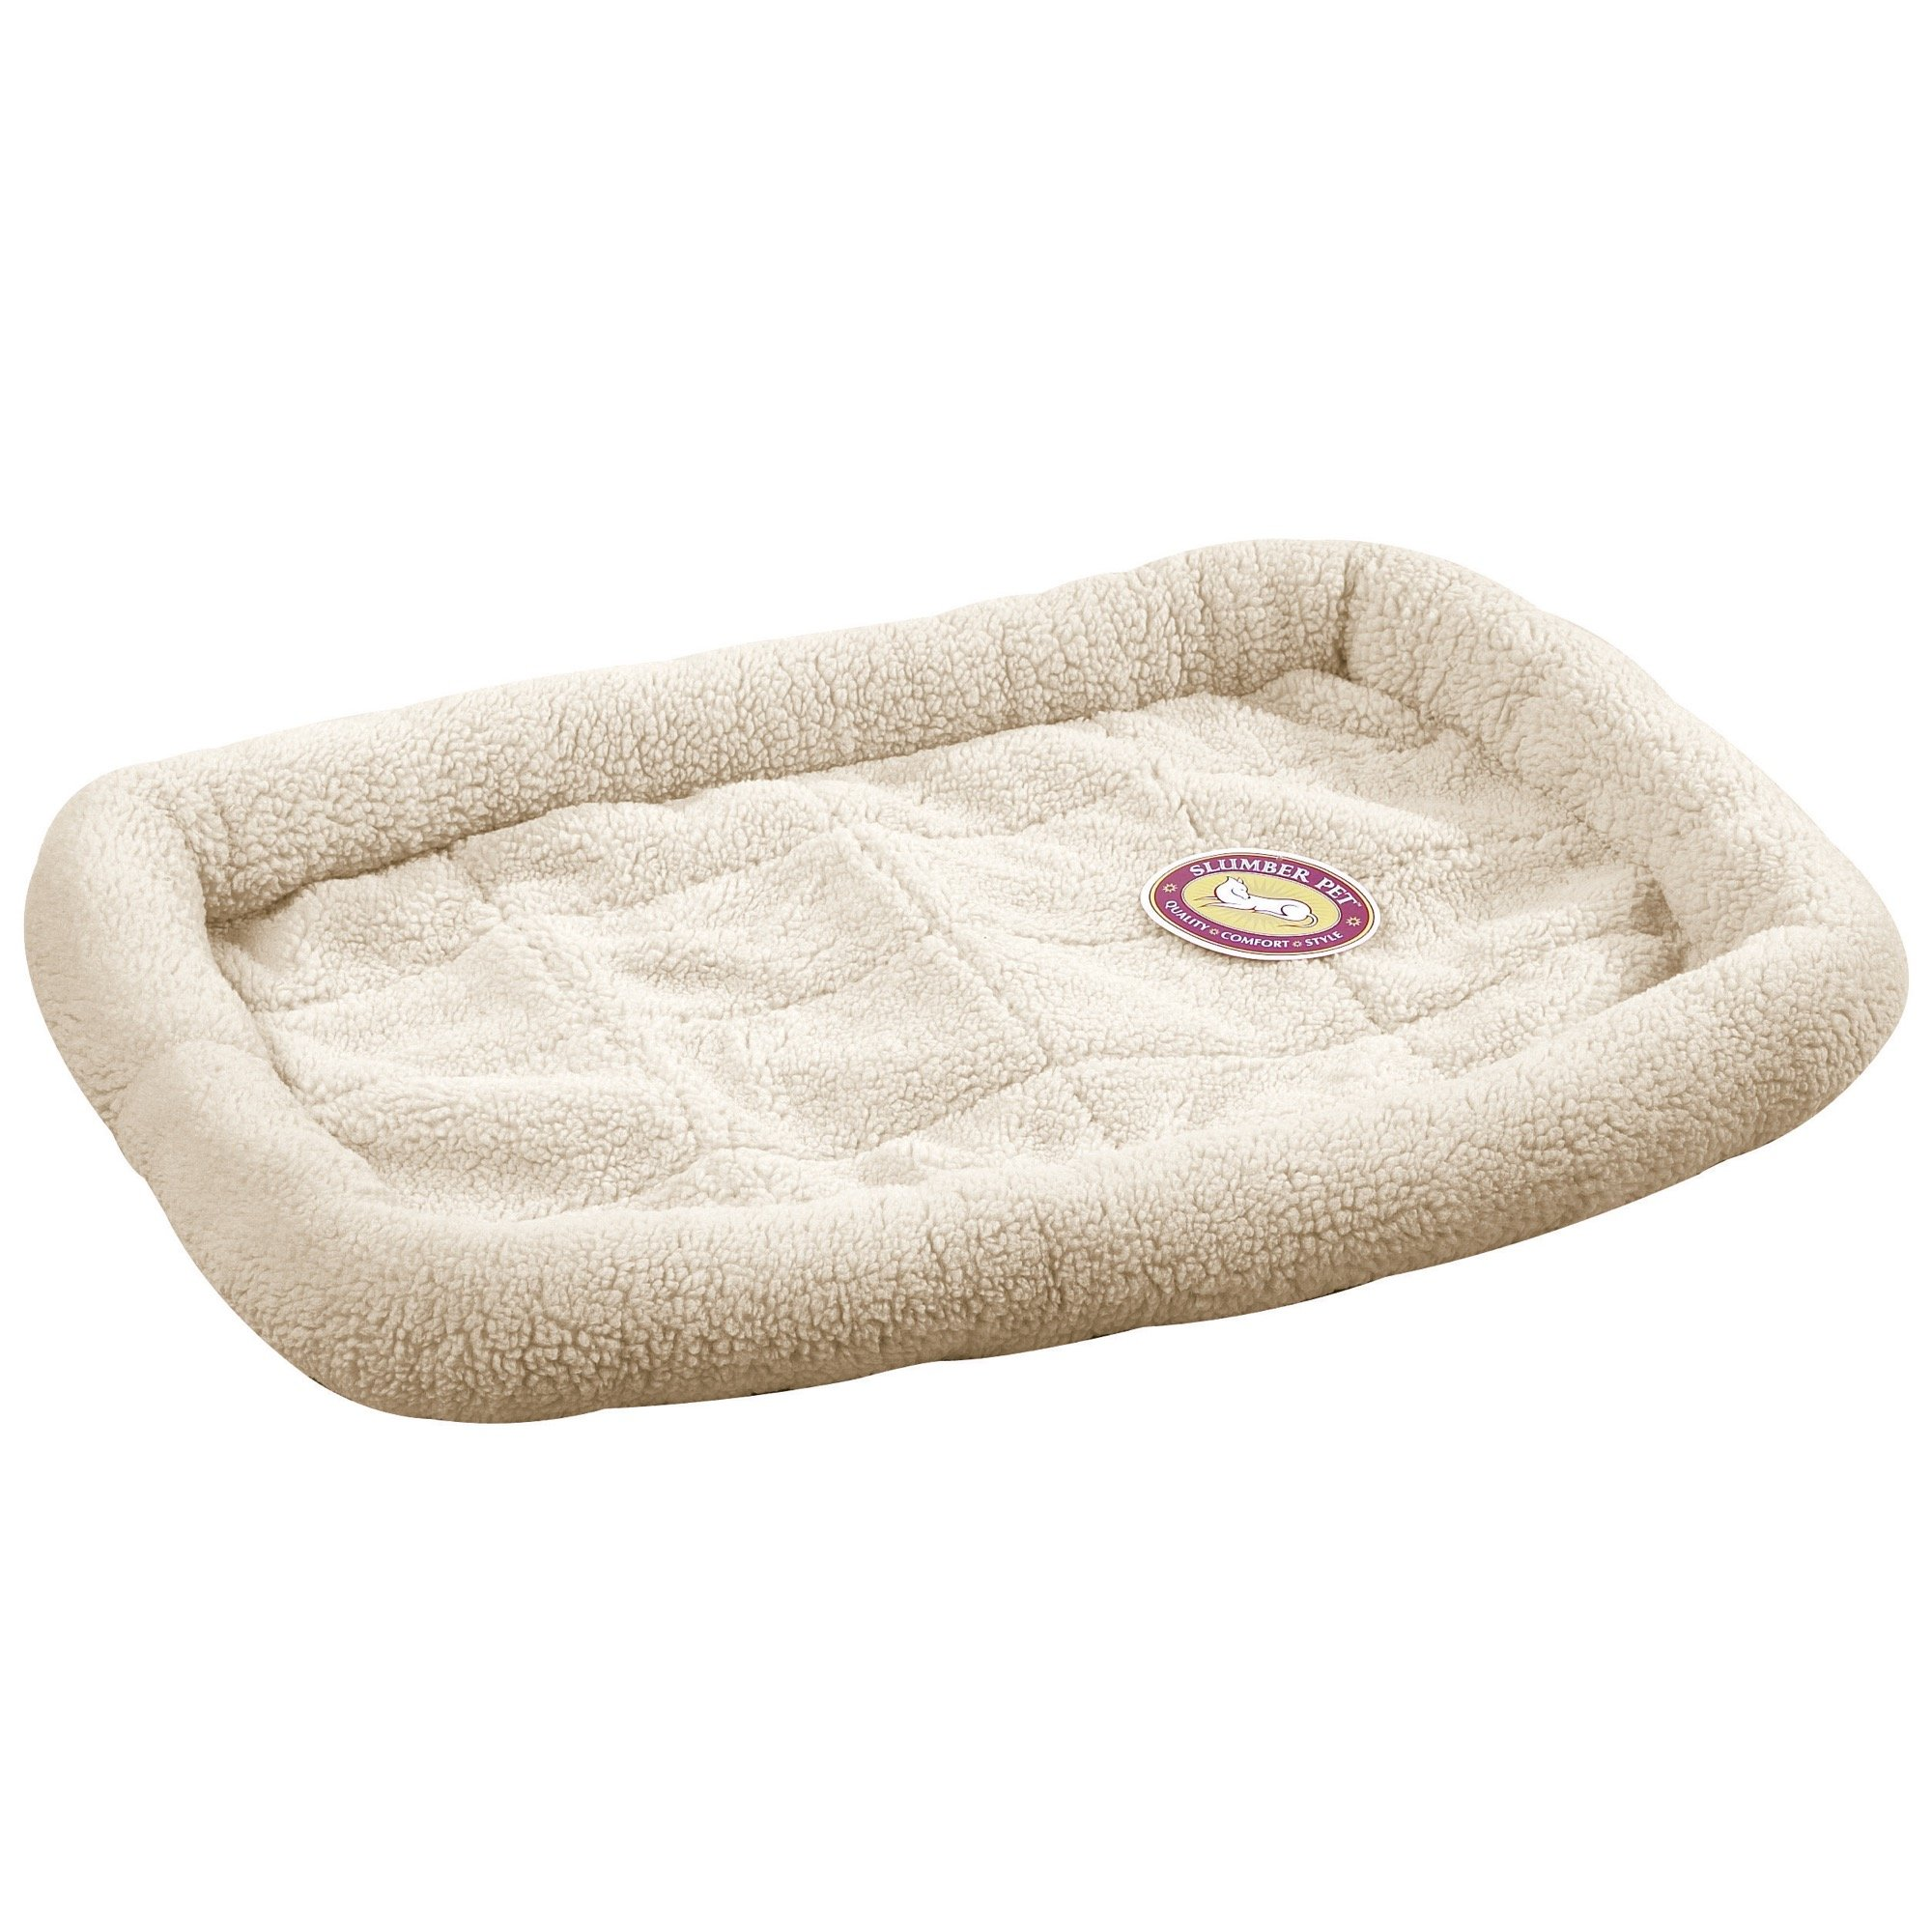 Slumber Pet Sherpa Crate Beds  - Comfortable Bumper-Style Beds for Dogs and Cats, Large, Natural Beige